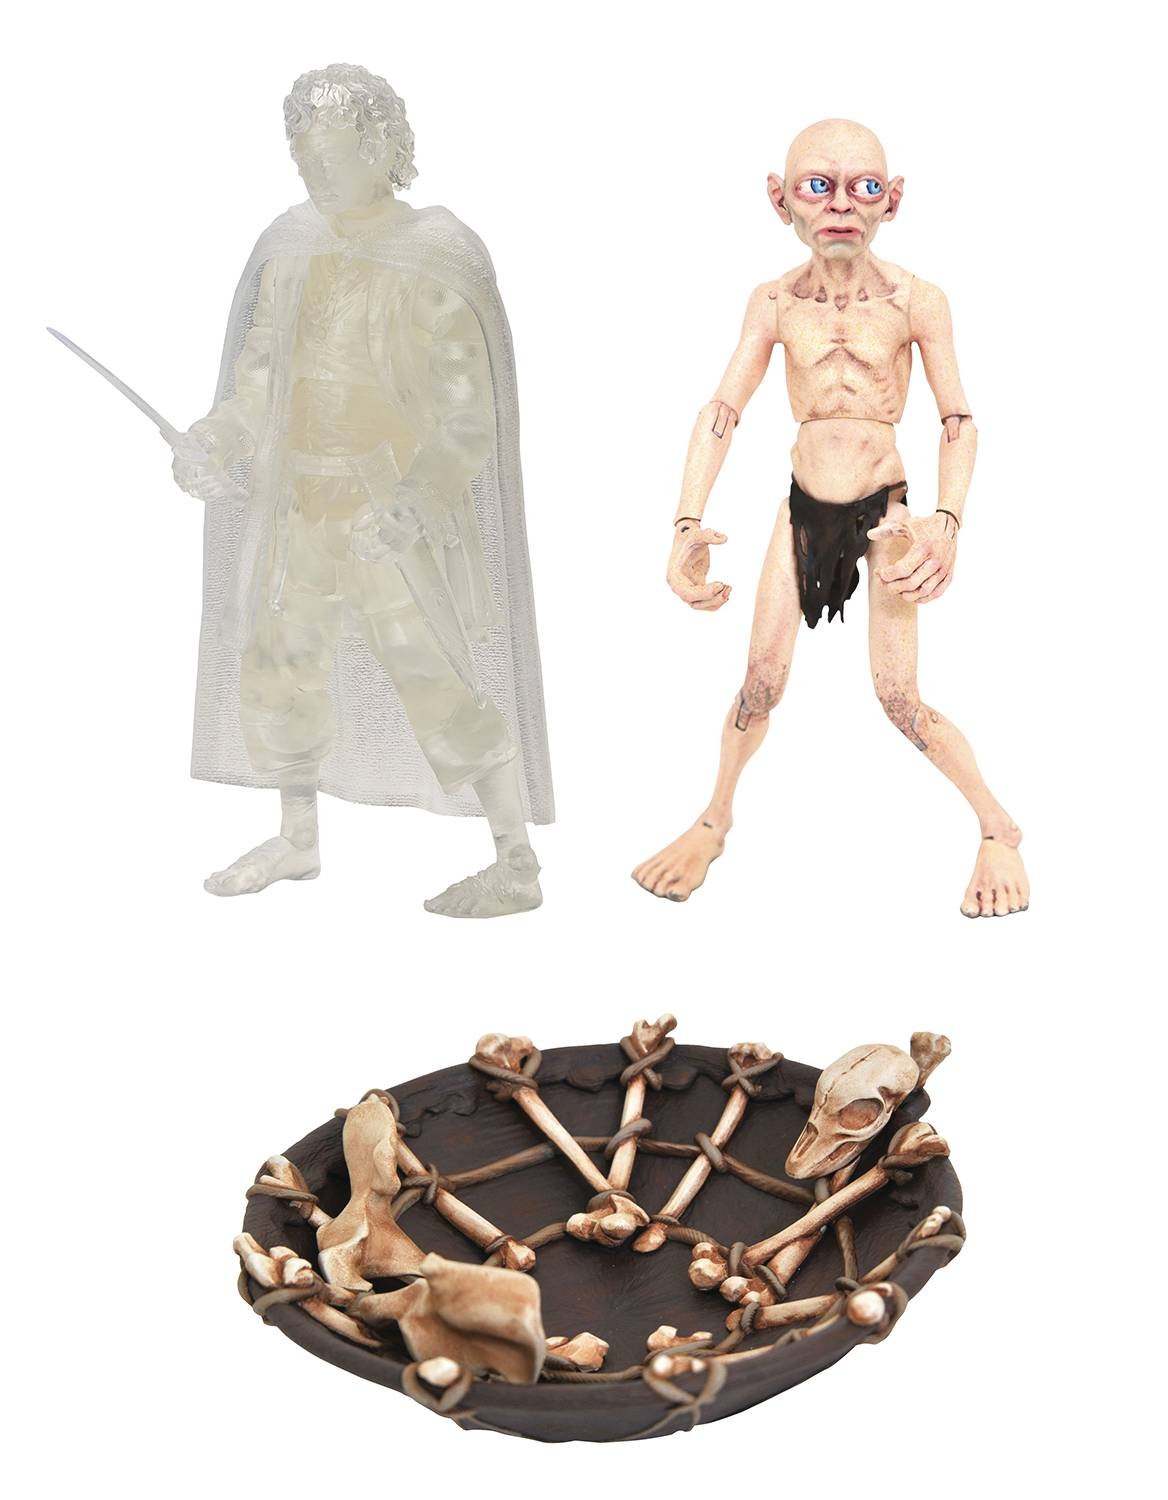 SDCC 2021 LORD OF THE RINGS DLX AF BOX SET FRODO & GOLLUM (C